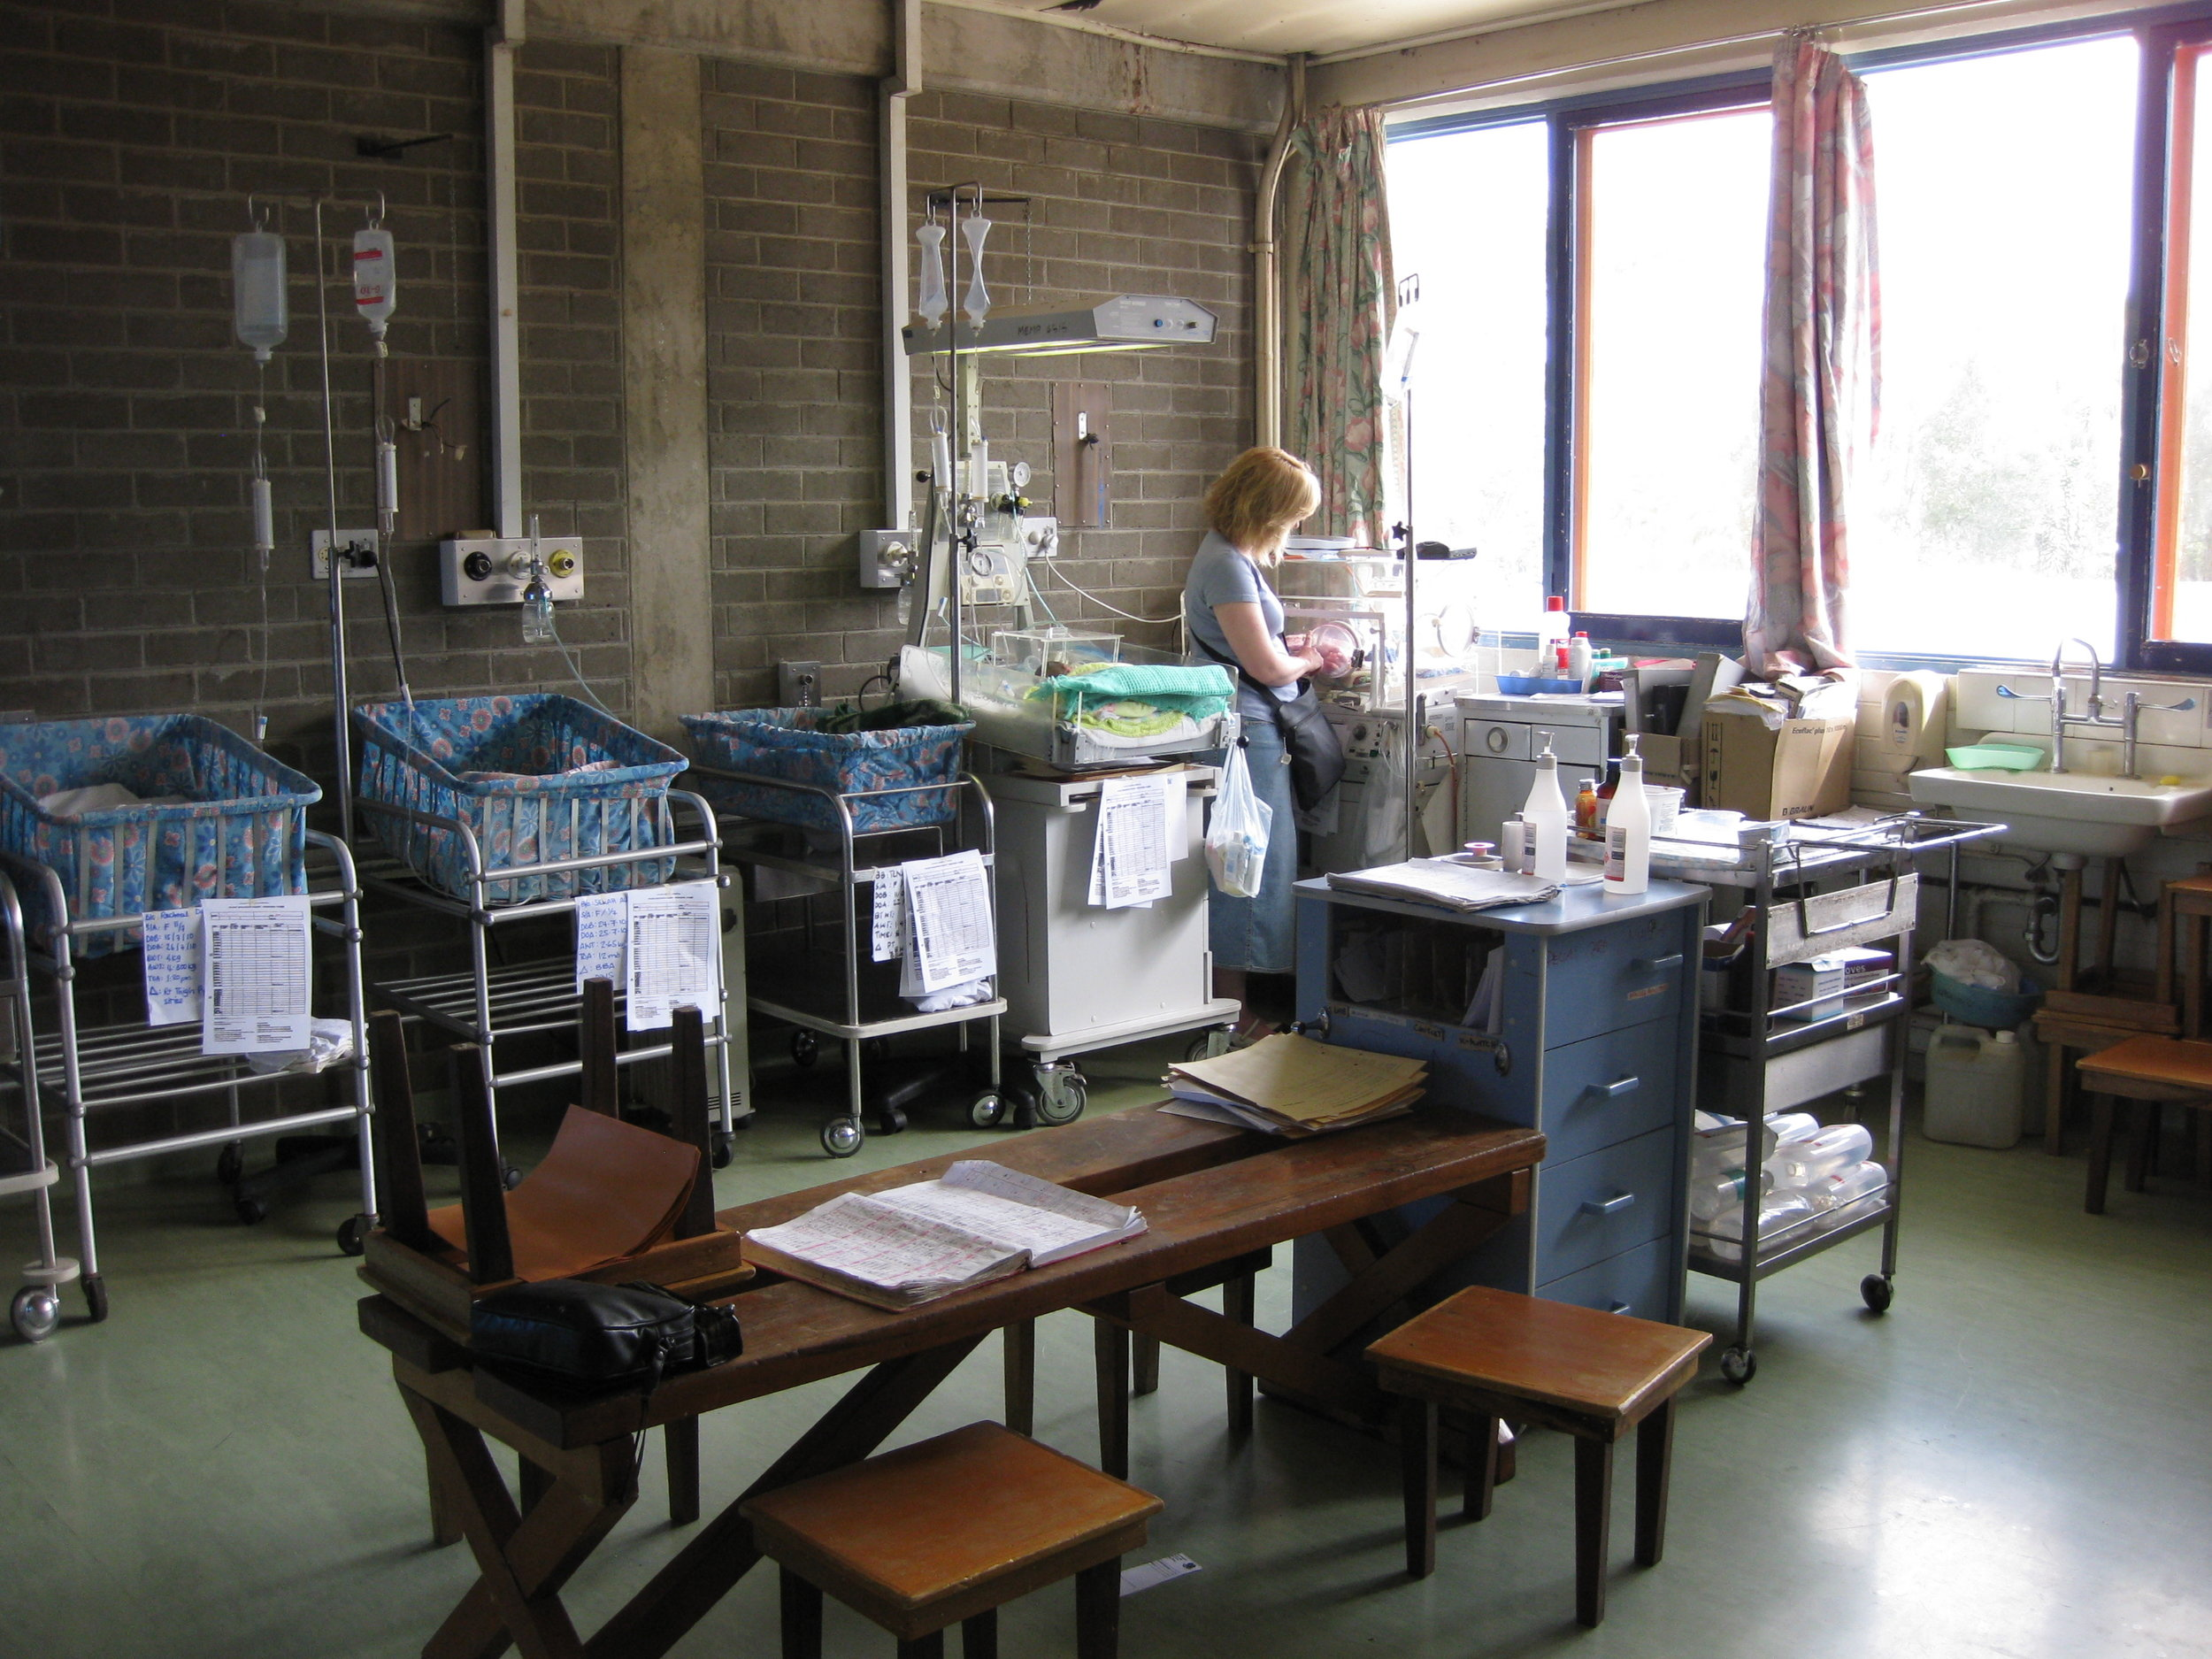 Medical supplies - AND EDUCATION PROGRAMSWe assist hospitals in the remote highlands of PNG that are very under resourced.